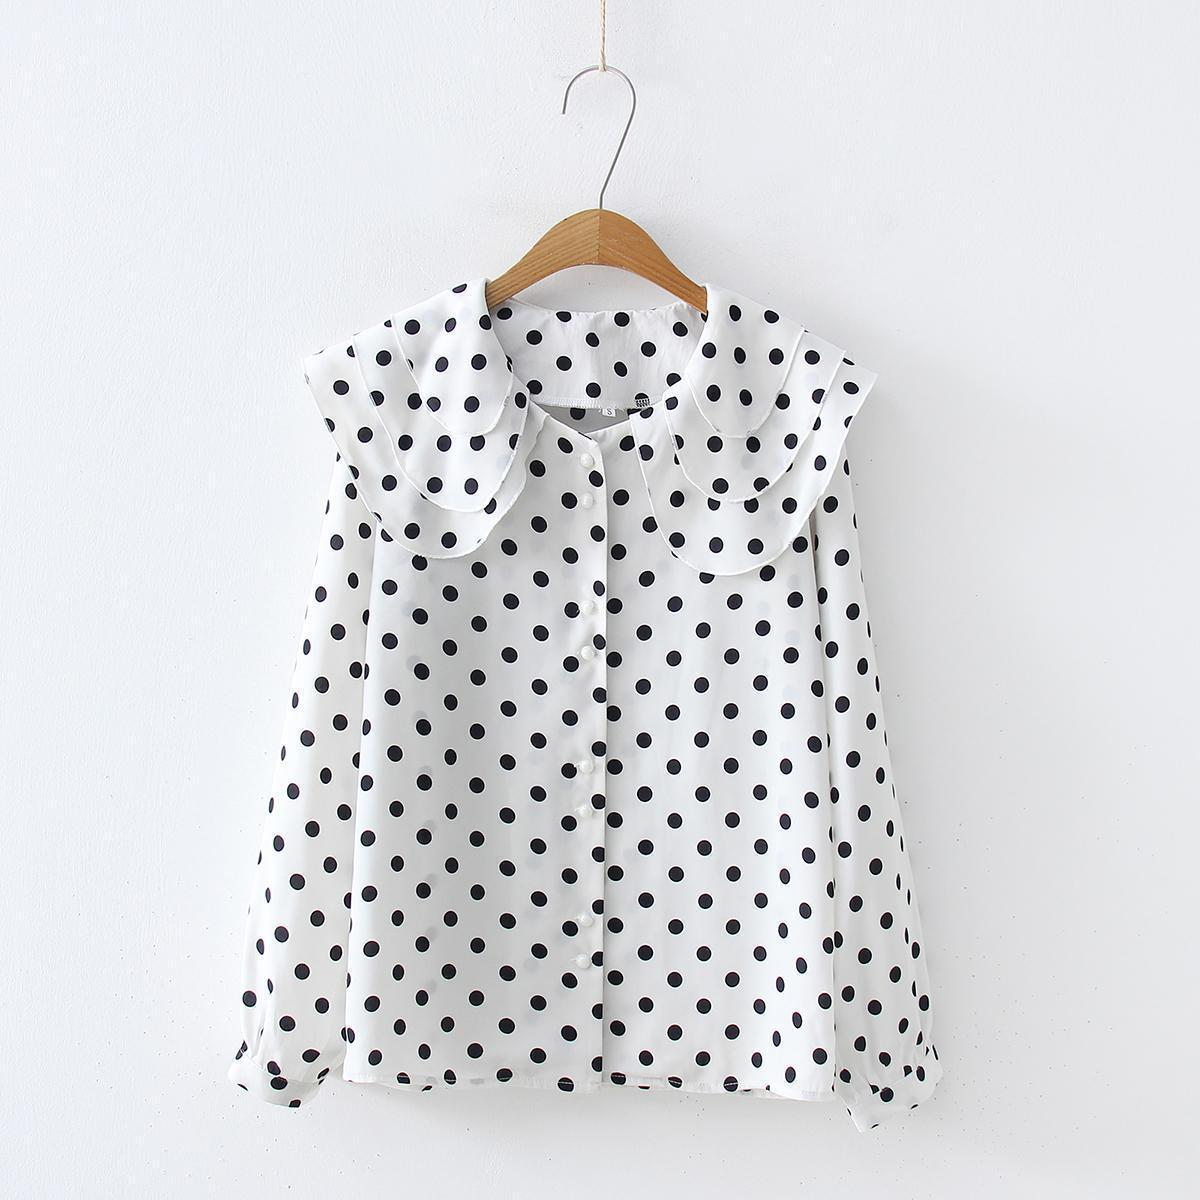 4ee34ab80 2019 2019 Spring New Women White And Black Polka Dot Long Sleeve Fashion  Ruffles Chiffon Tops Shirts Casual Blouse Shirts From Godblessus16388802